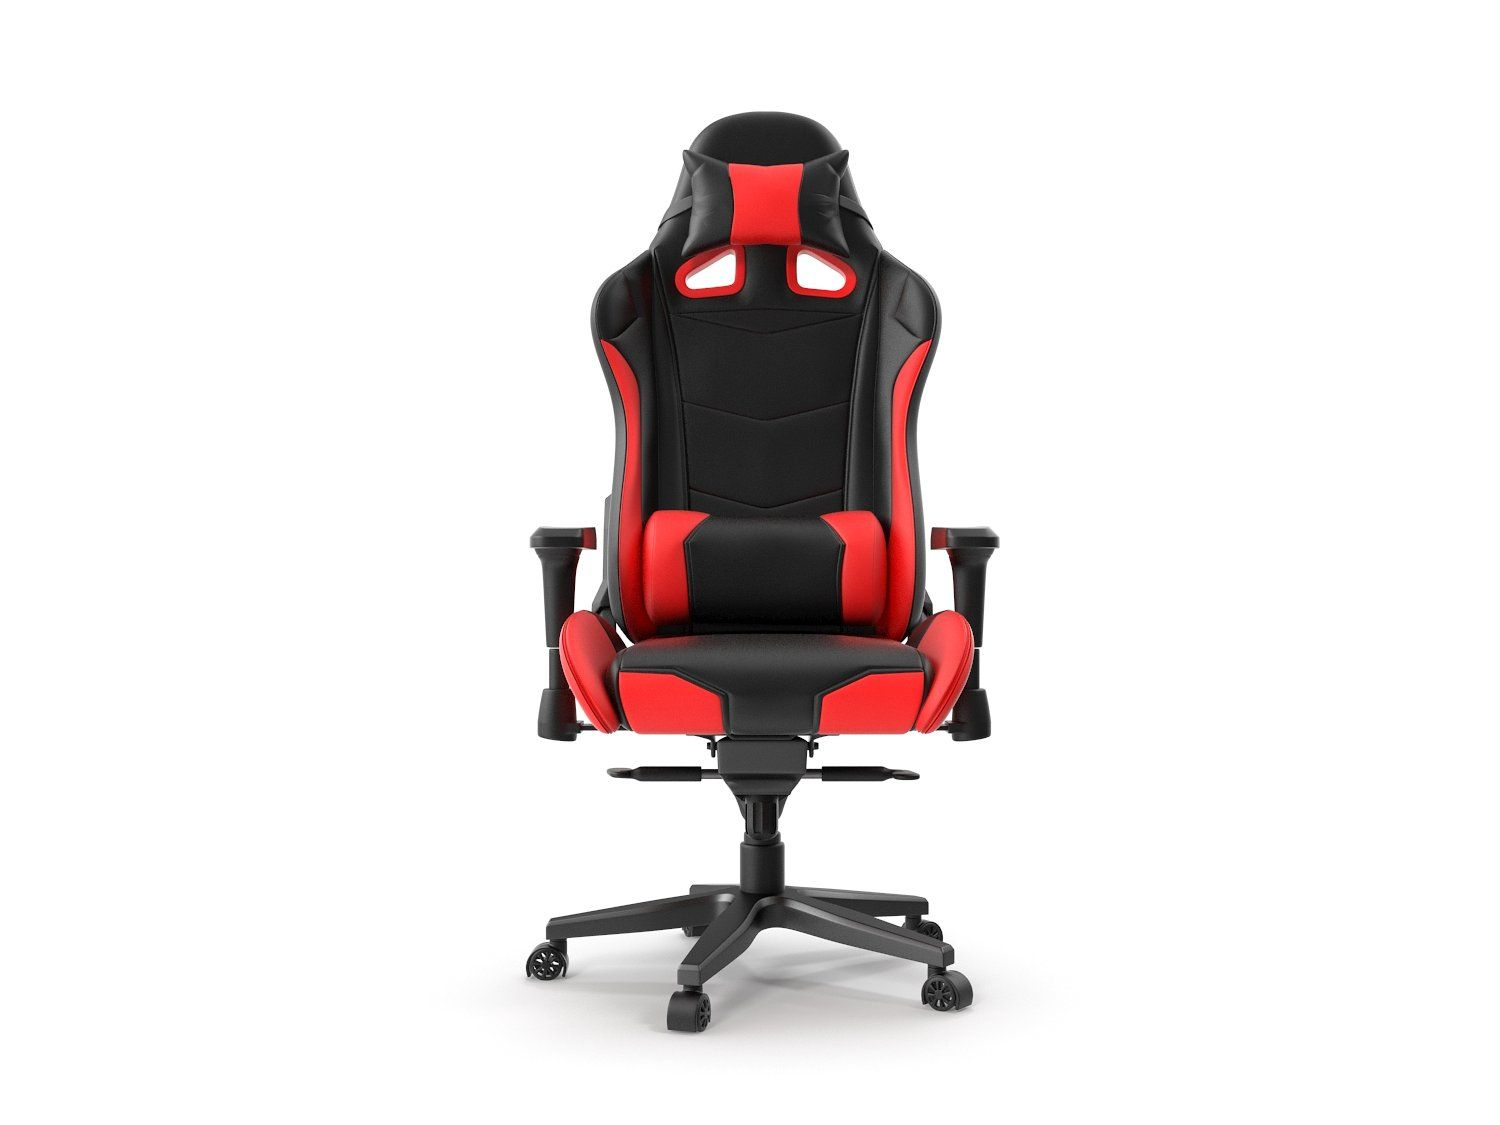 Opseat modern computer gaming chair gaming chair gaming